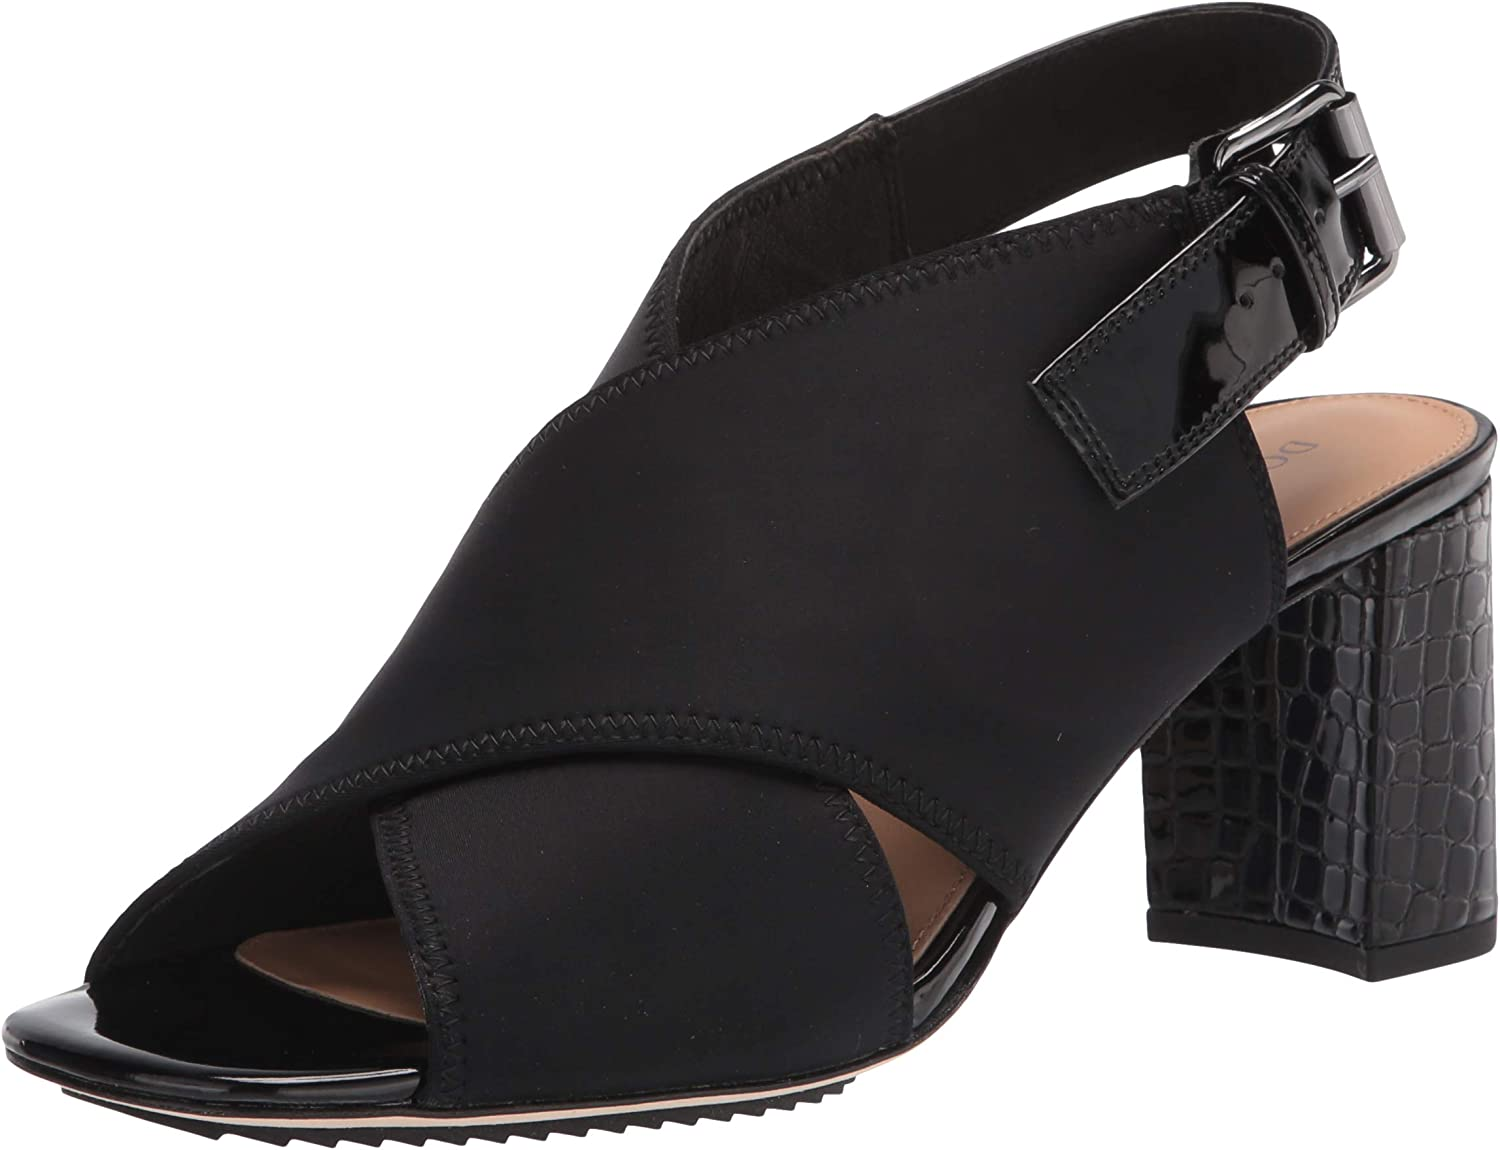 Donald J Max 76% OFF Pliner Heeled Women's Sandal 2021 autumn and winter new